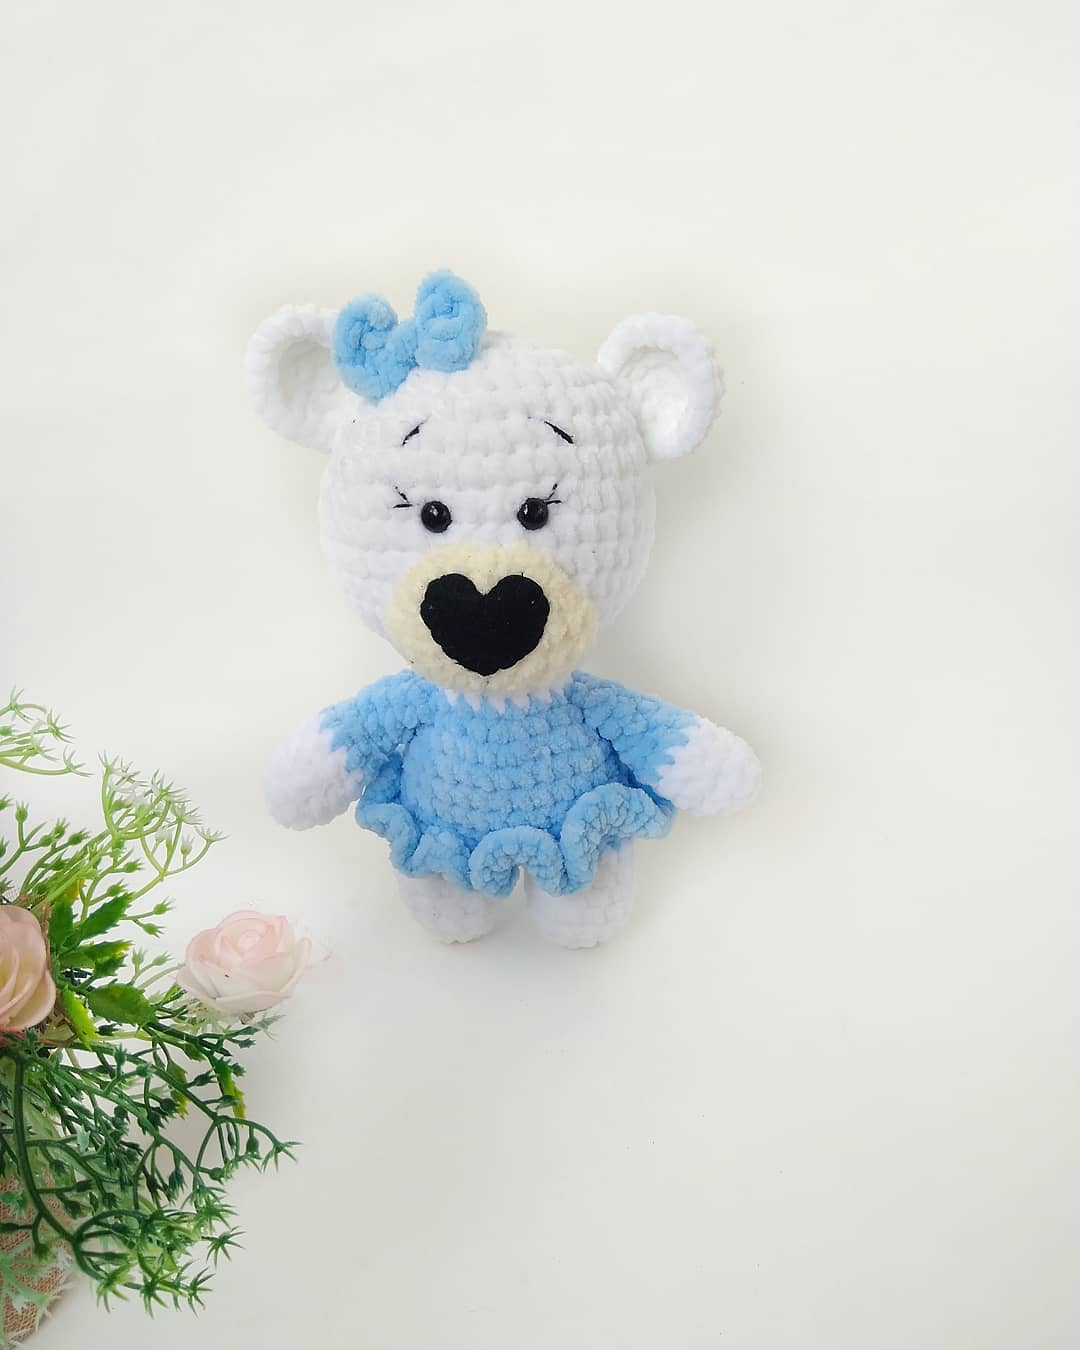 Amigurumi plush bear in dress